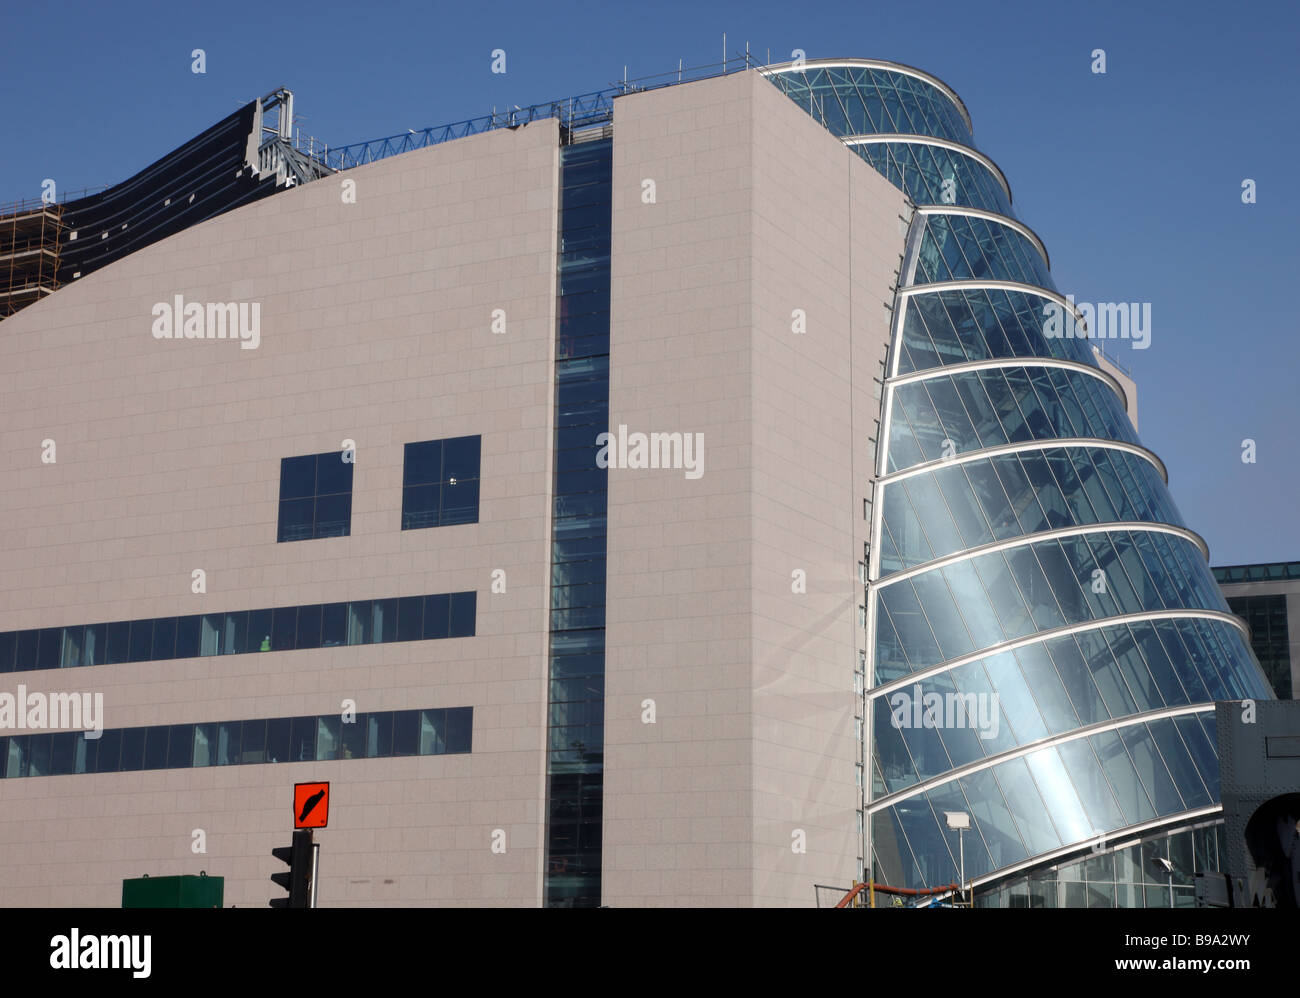 National Conference Centre Dublin Docklands Ireland - Stock Image